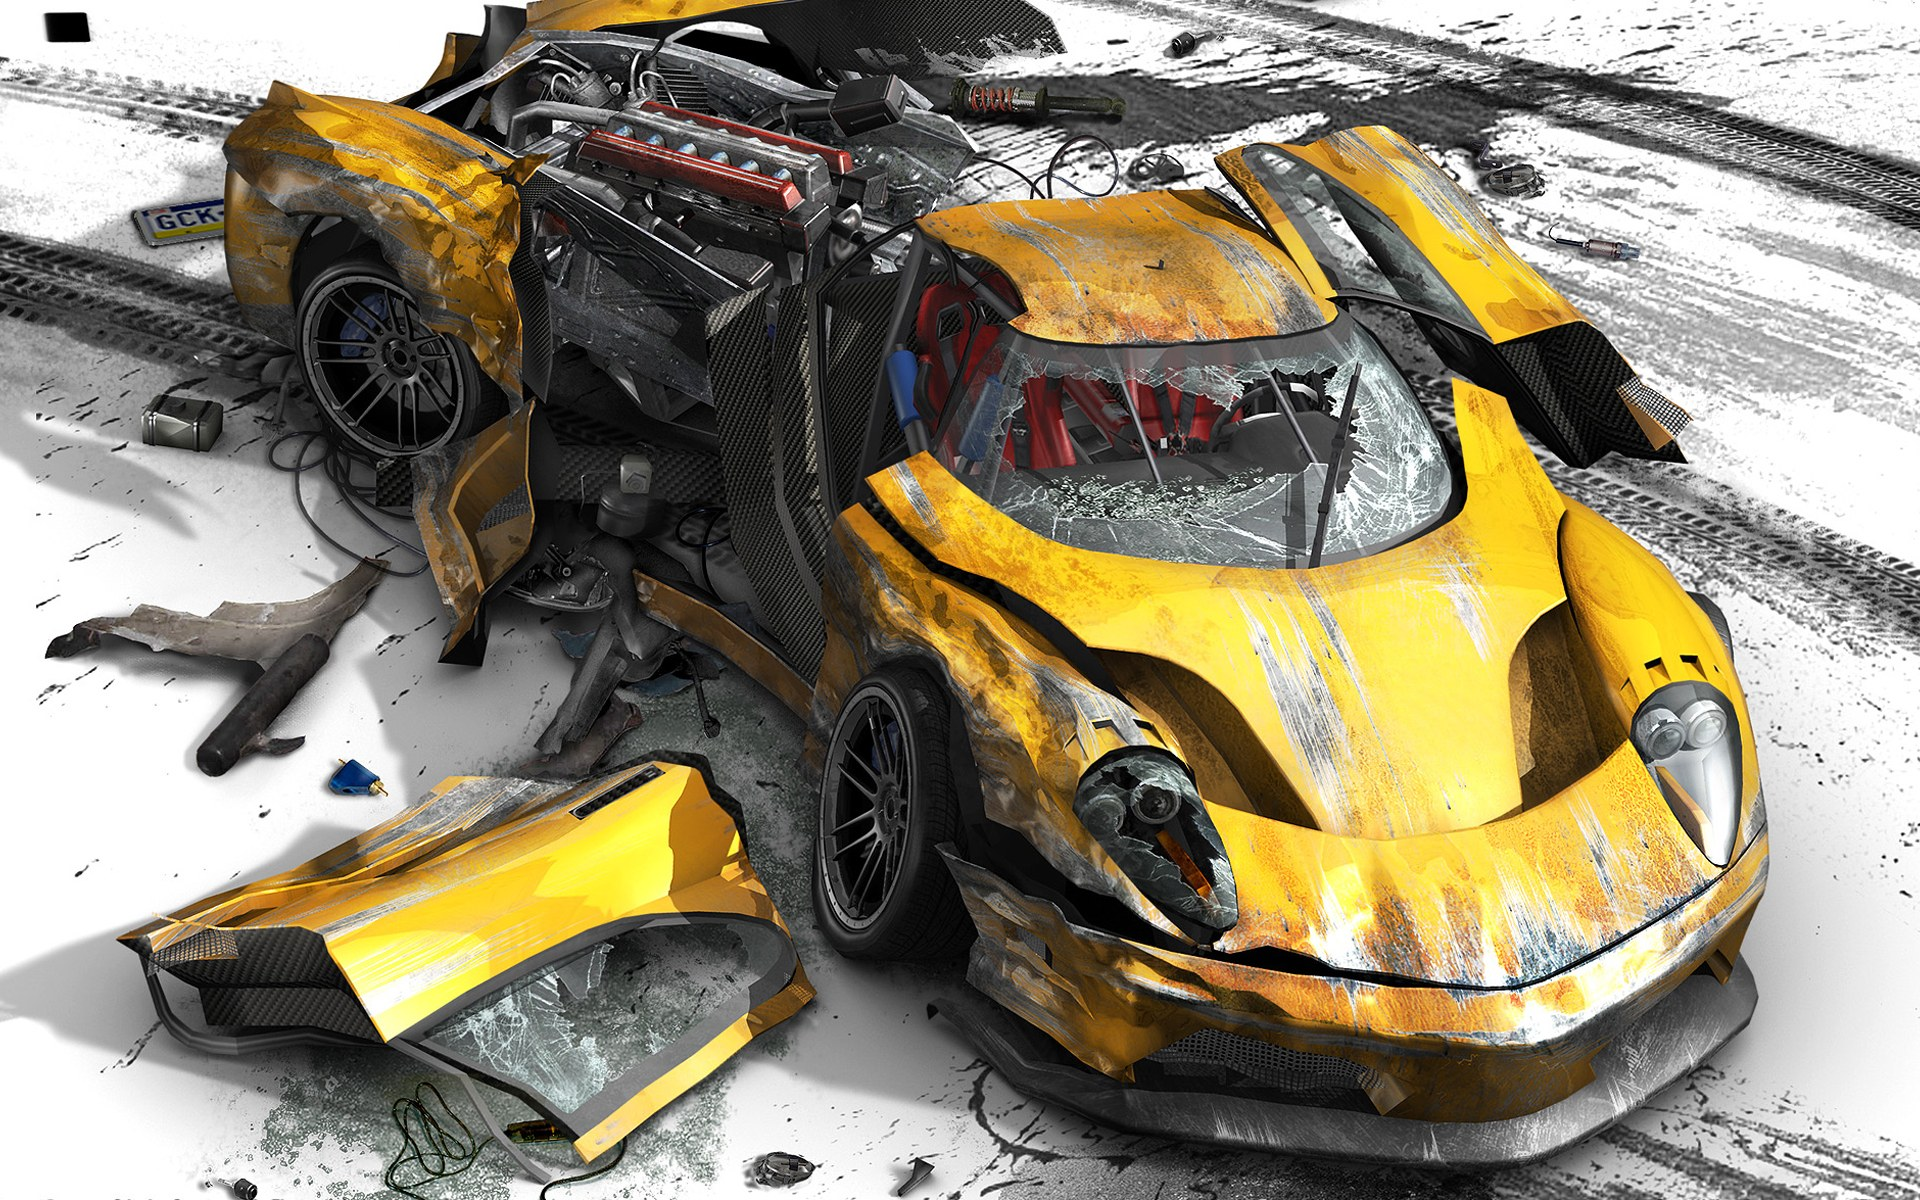 Car Crash Wallpapers High Resolution HD Video Games Wallpapers 1920x1200